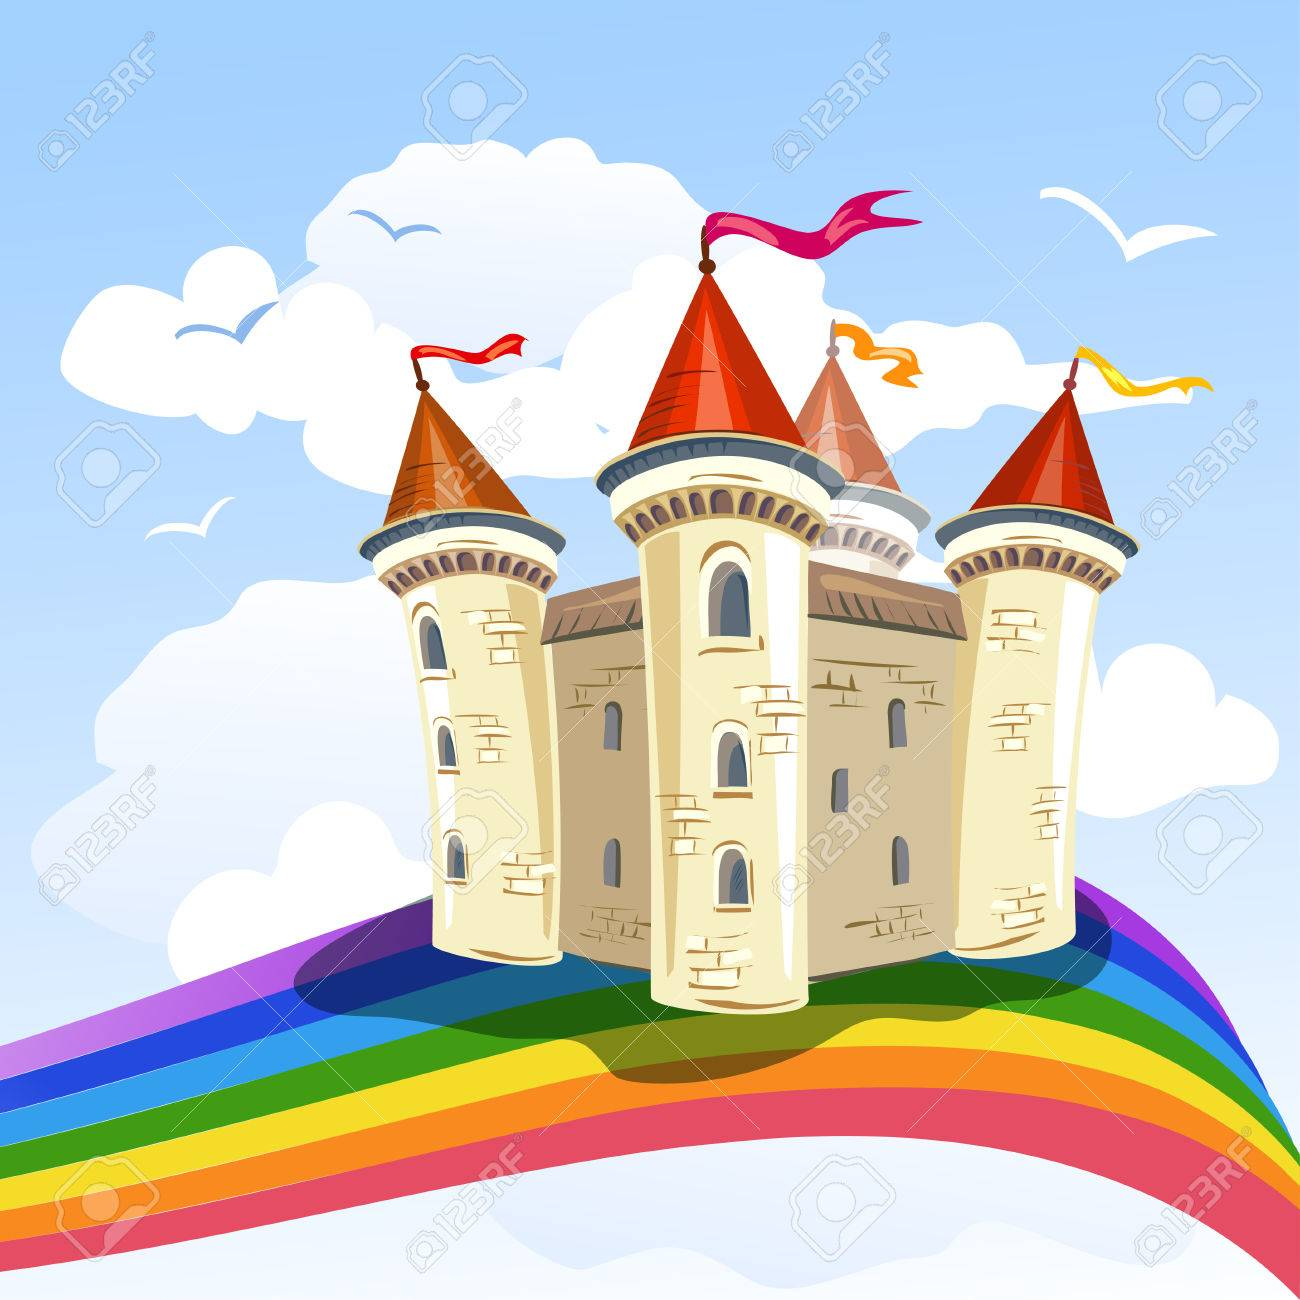 fairy tale castle in the clouds and a rainbow Standard-Bild - 34247726